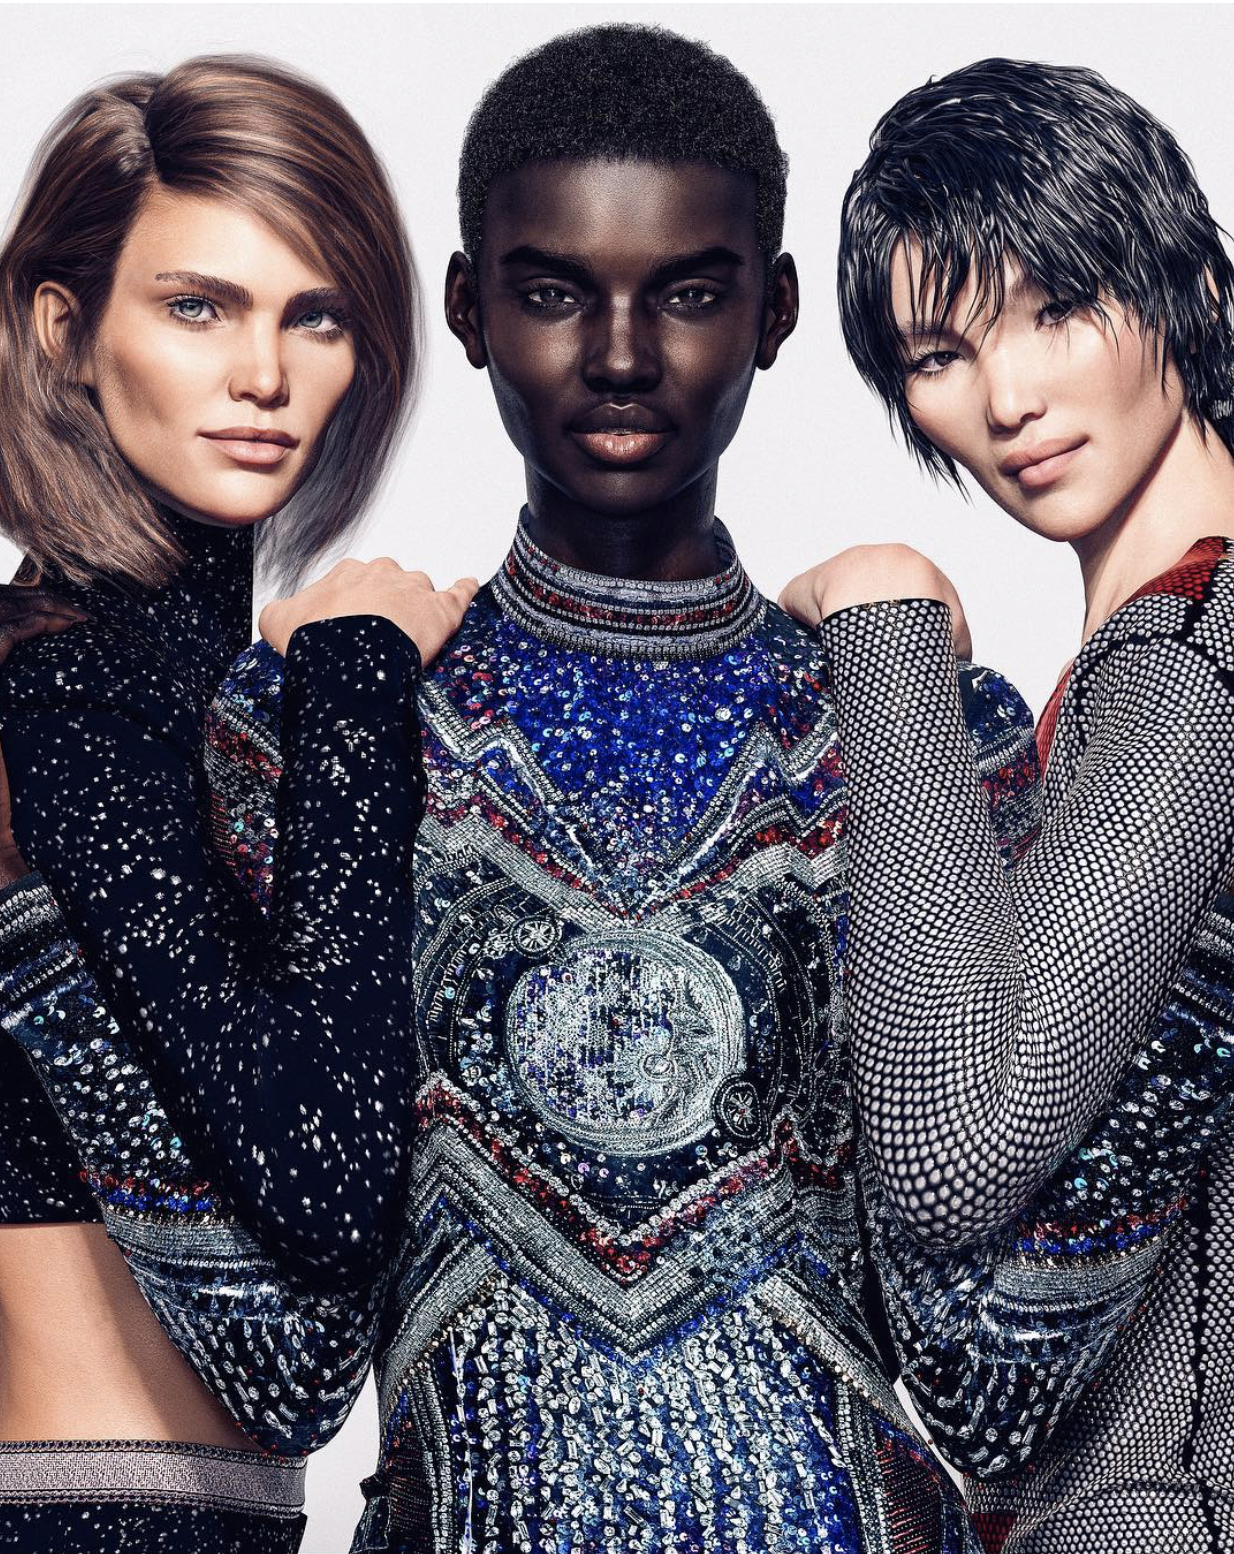 I'm not sure these models was what he said were aliens, but these models are virtual and created by Balmain.